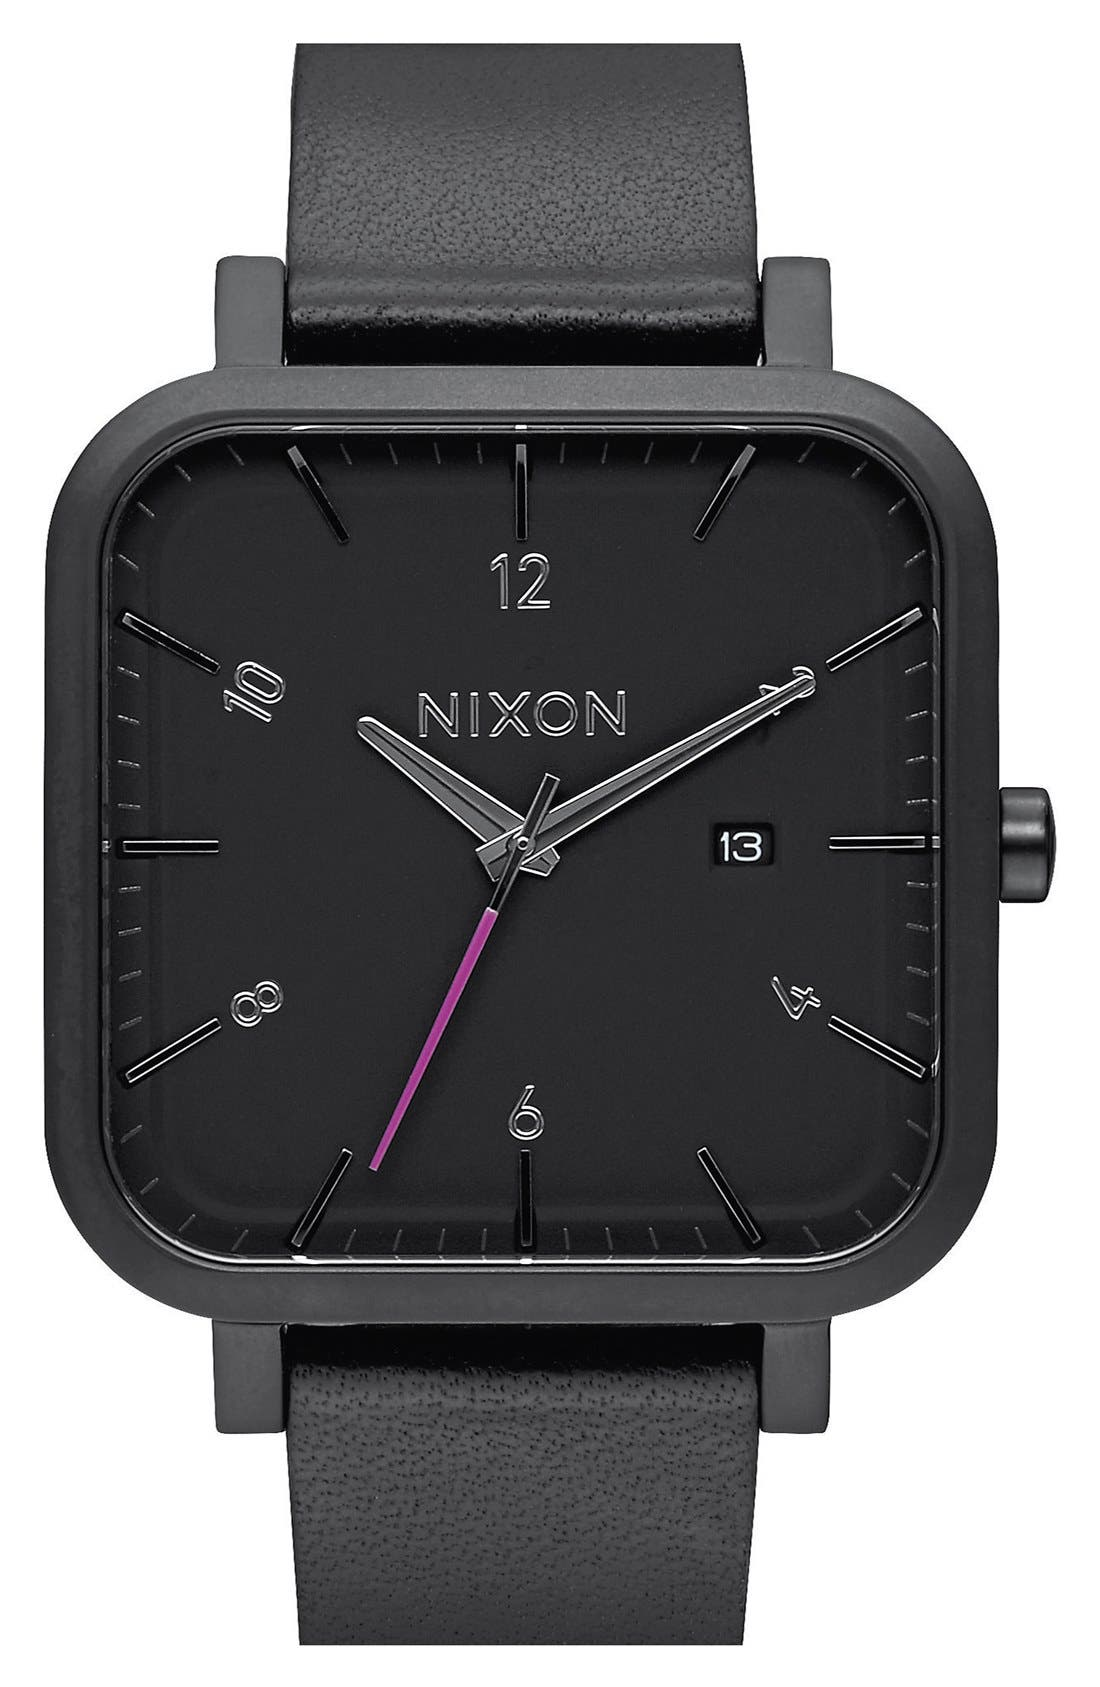 Alternate Image 1 Selected - Nixon 'Ragnar' Square Leather Strap Watch, 40mm x 40mm